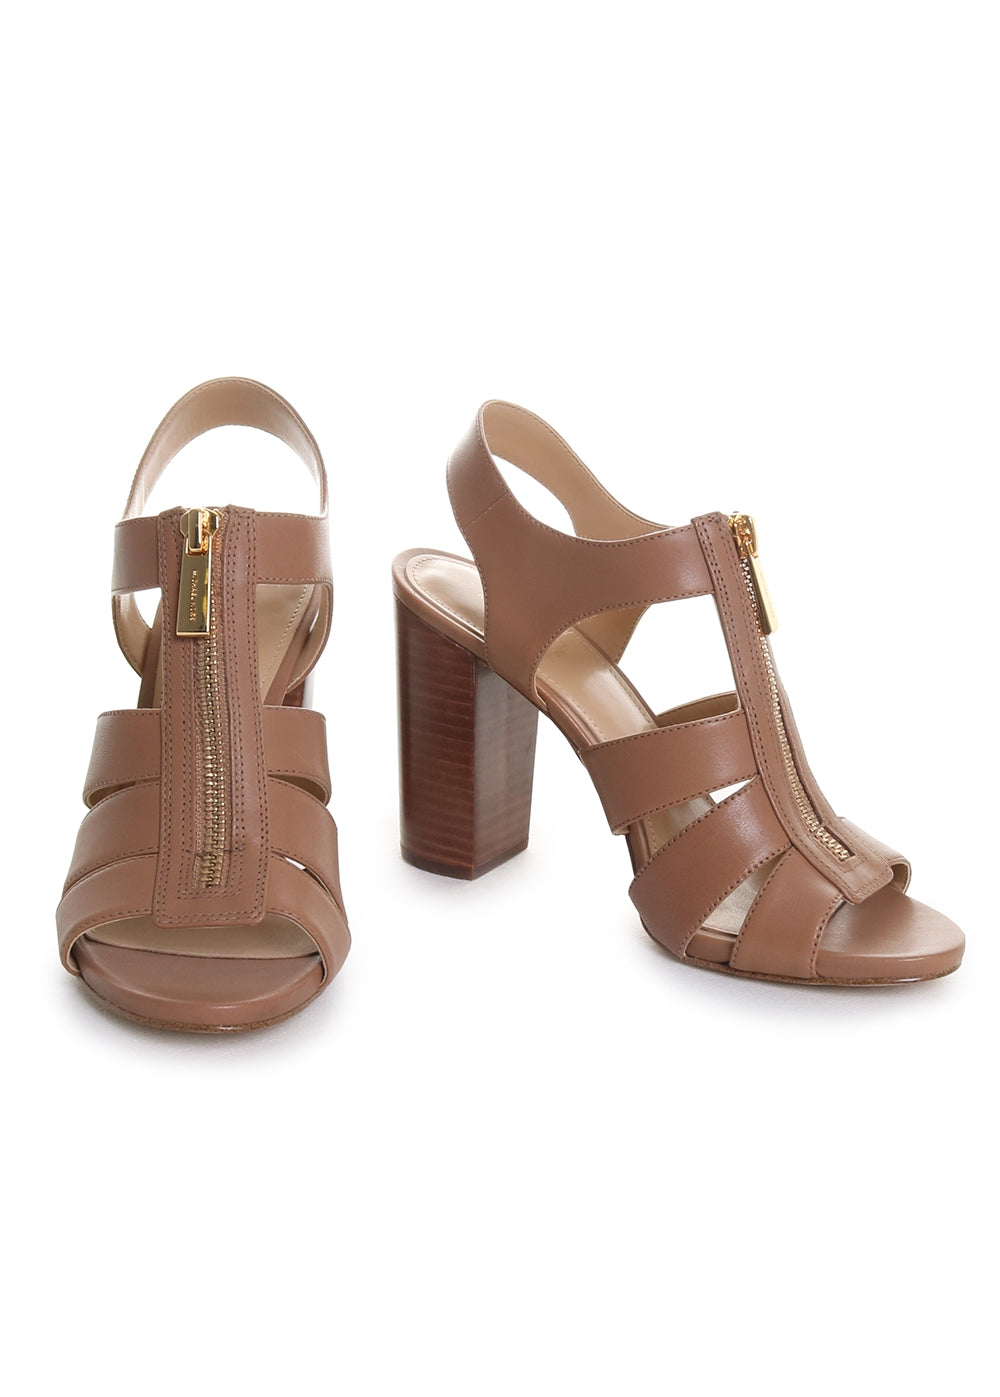 Damita Leather Heeled Sandals